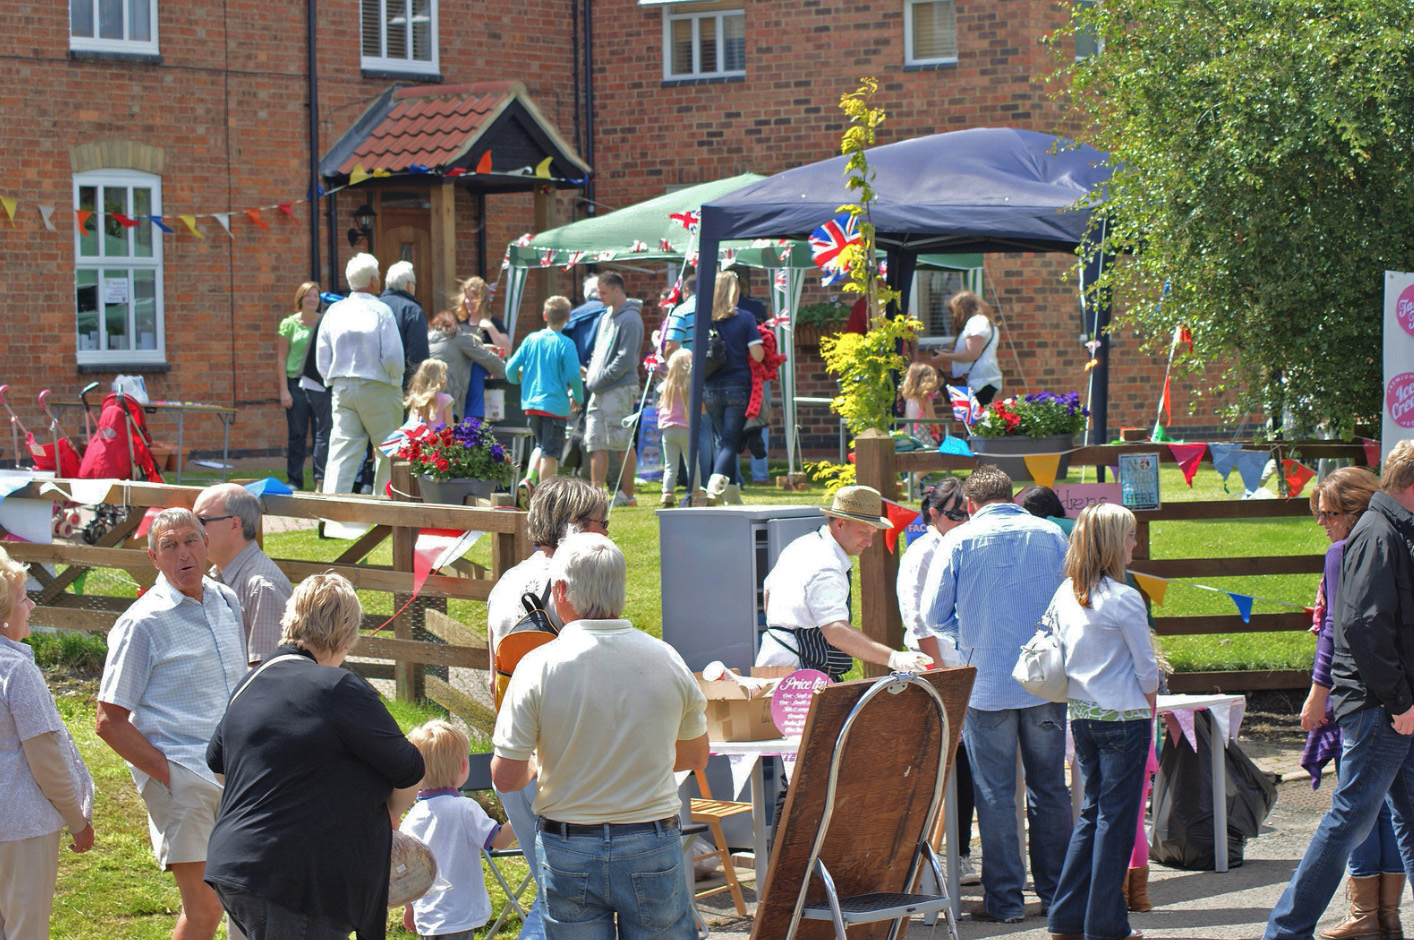 Yelden Strawberry Fayre